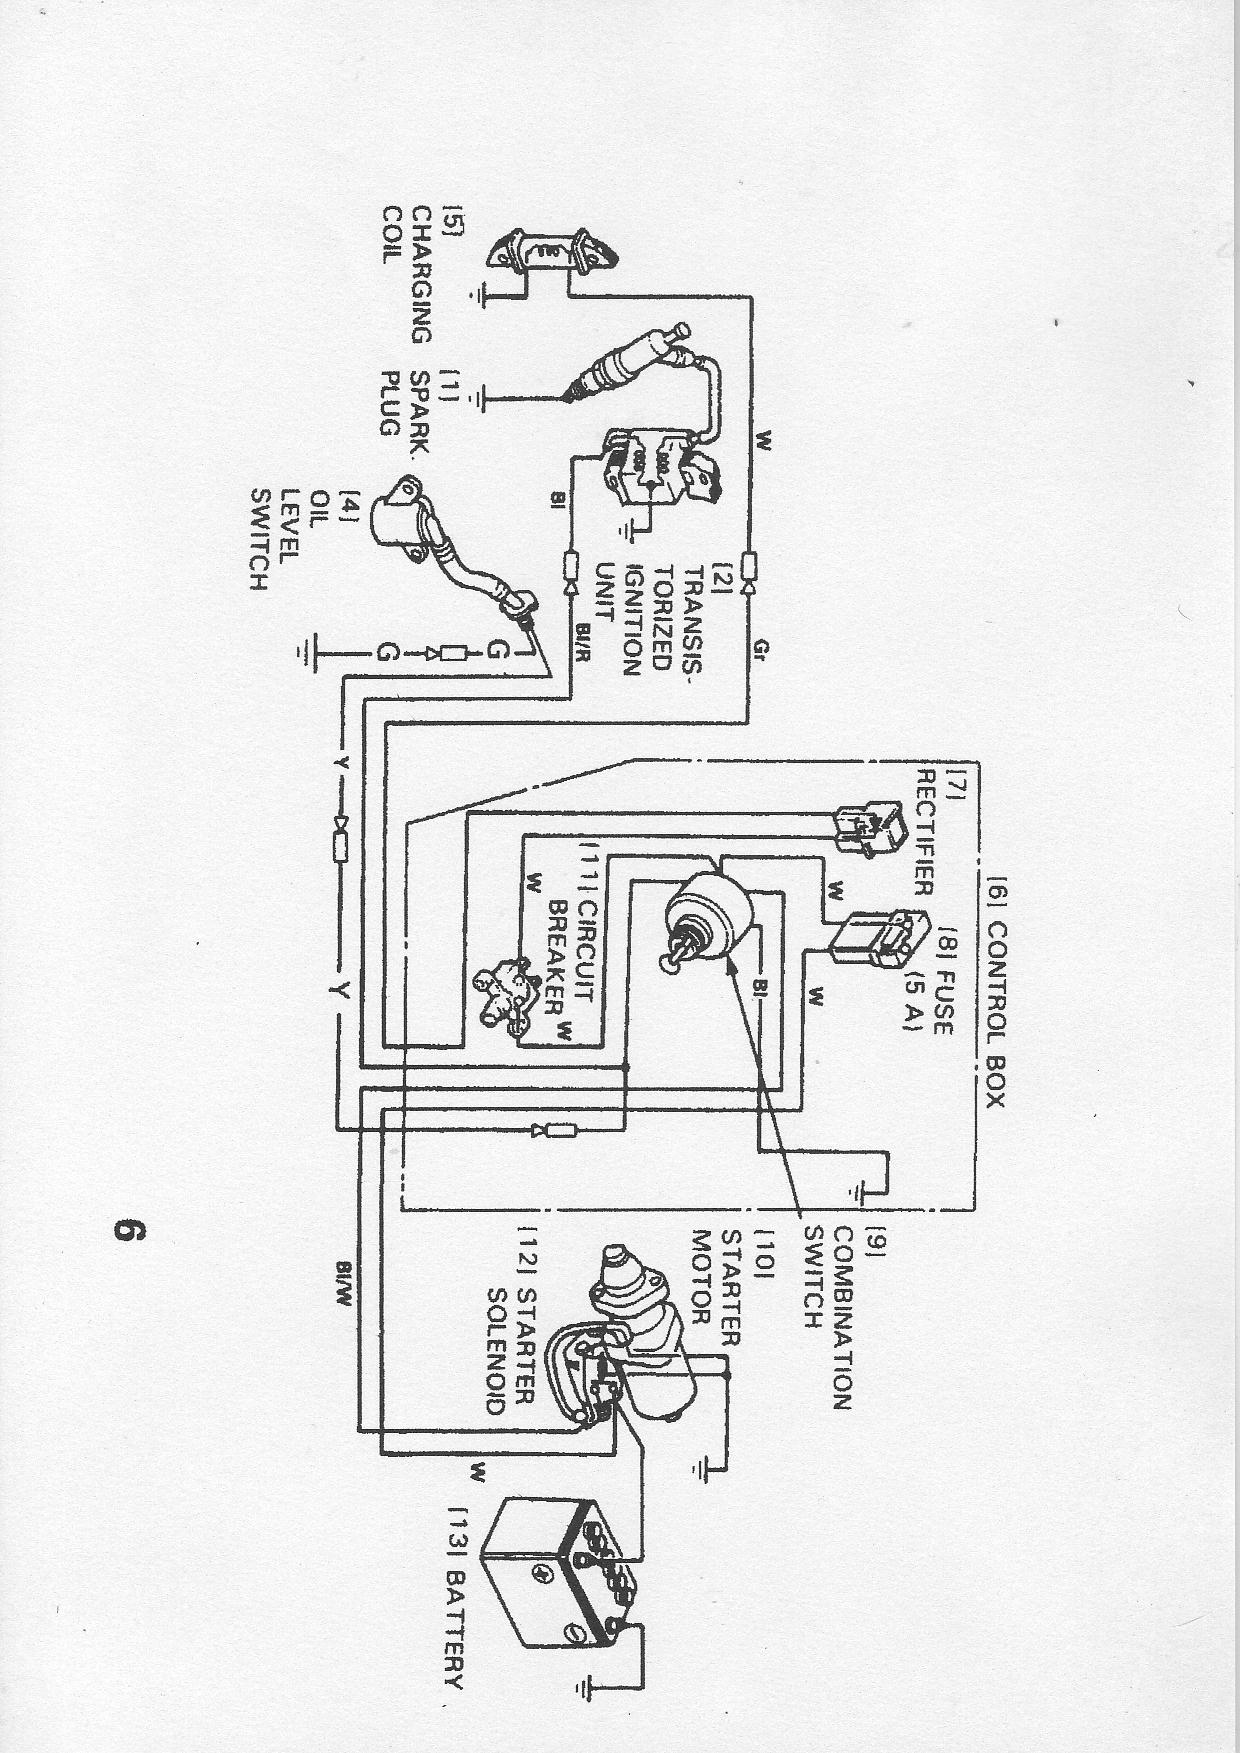 Honda Gx340 Starter Wiring Diagram Simple Guide About E200 Razor Scooter Gx270 26 Images